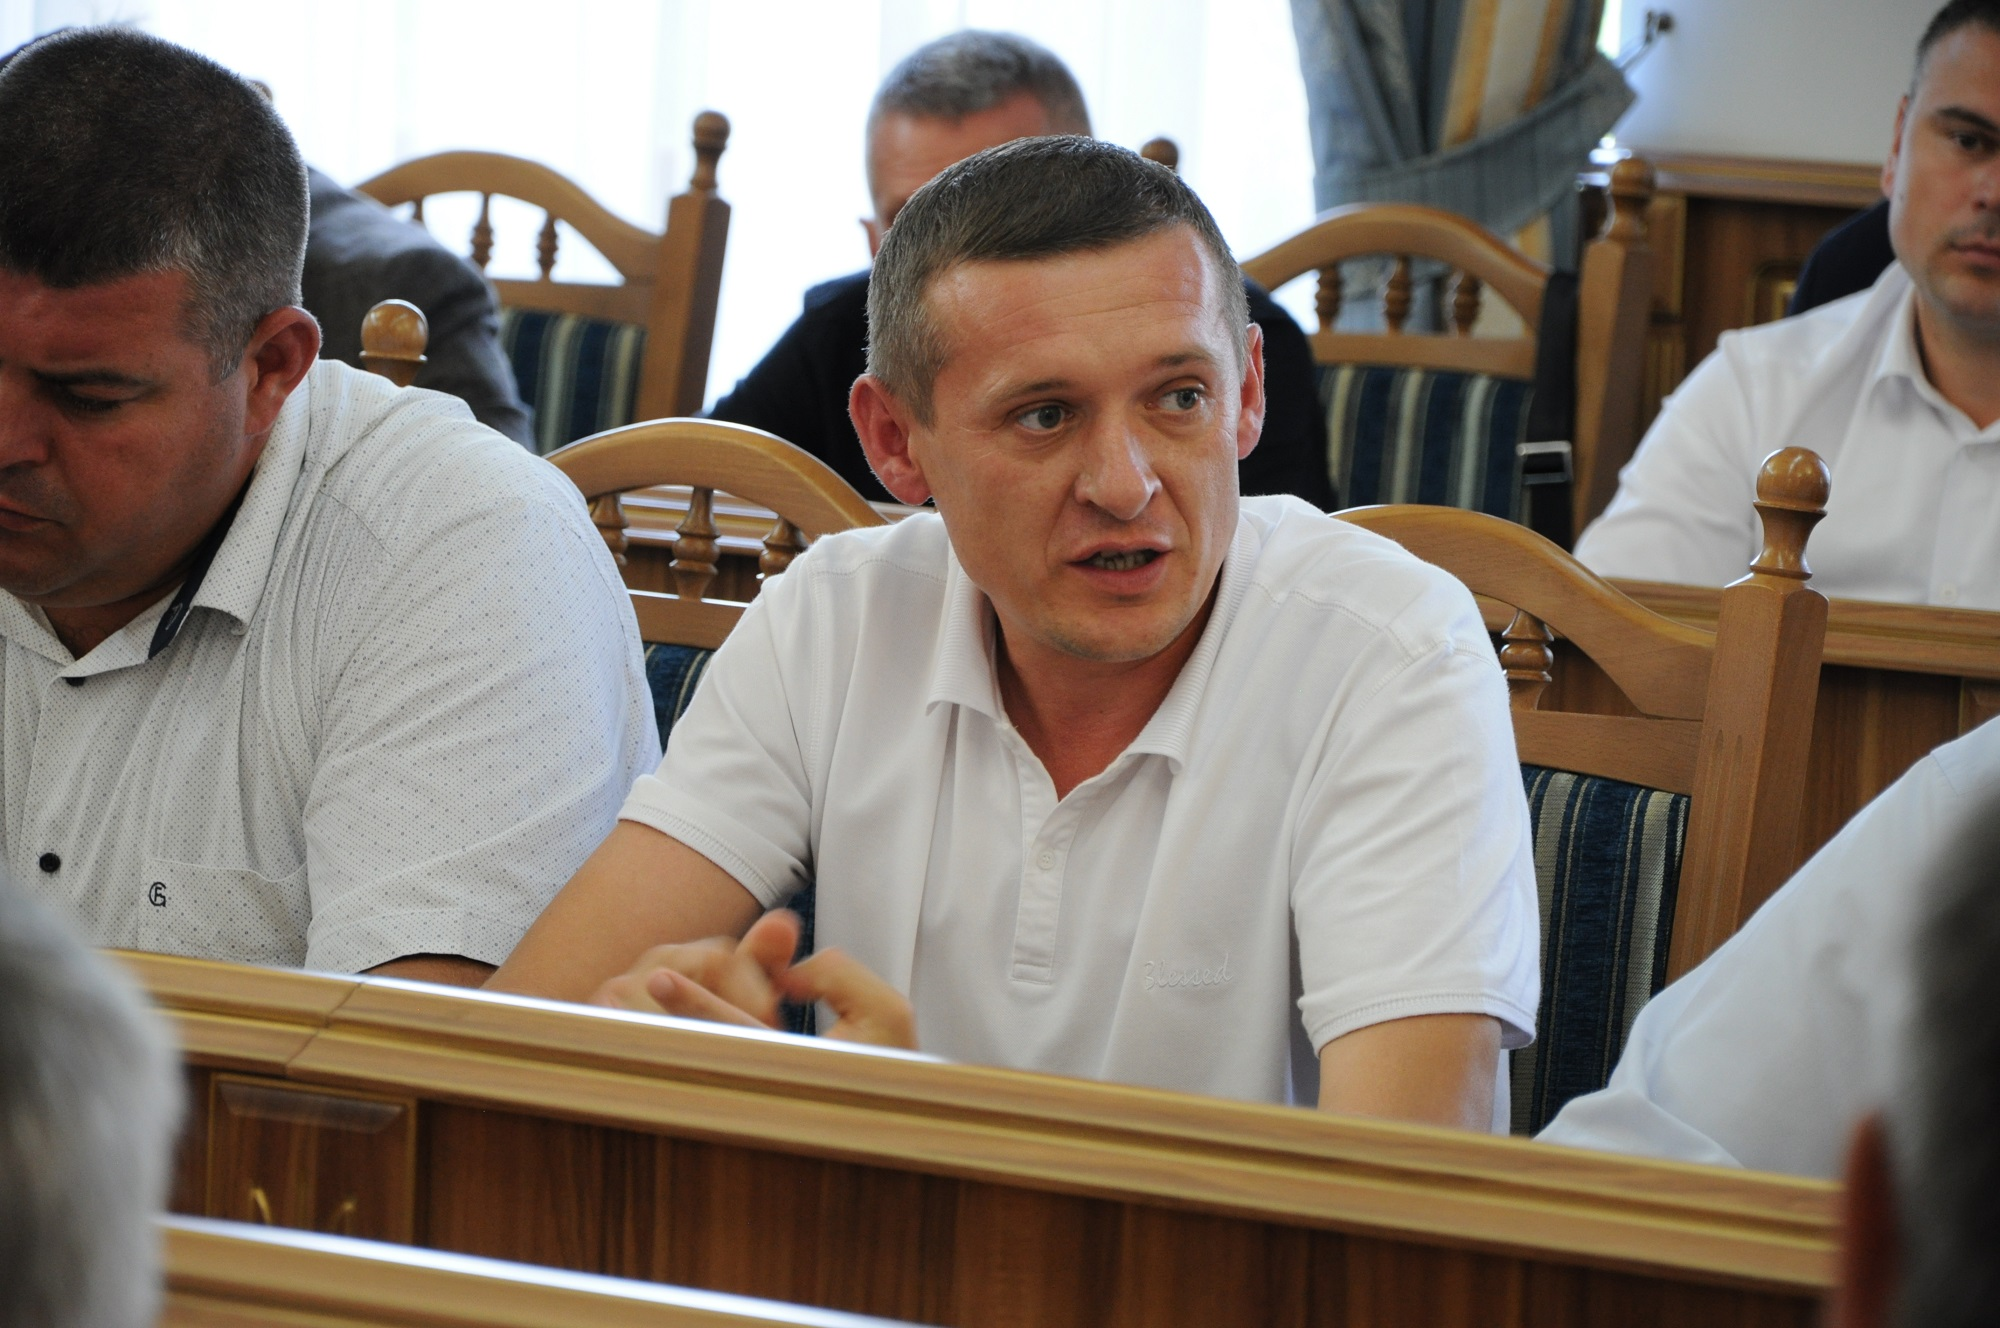 People will react calmly to administrative amalgamation, since they see successes of AHs - Vyacheslav Nehoda